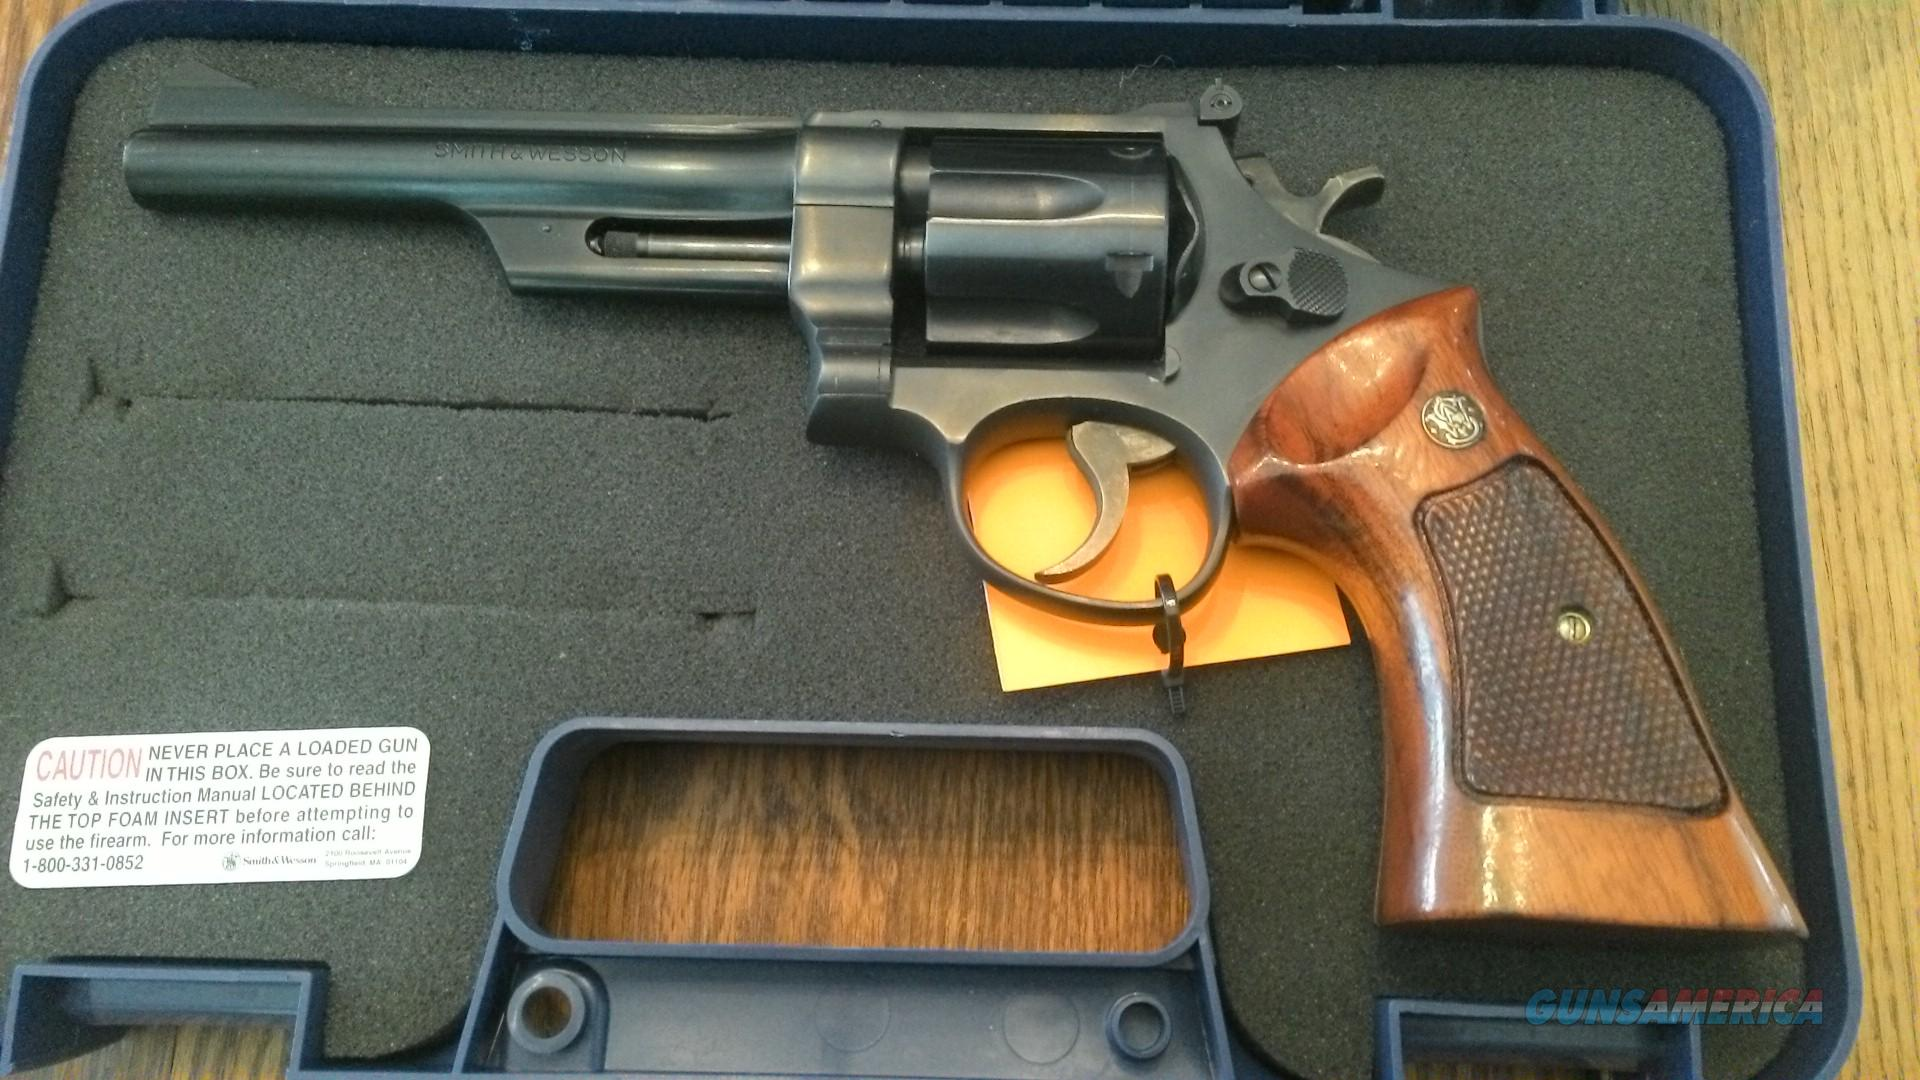 Smith & Wesson  Guns > Pistols > Smith & Wesson Revolvers > Full Frame Revolver